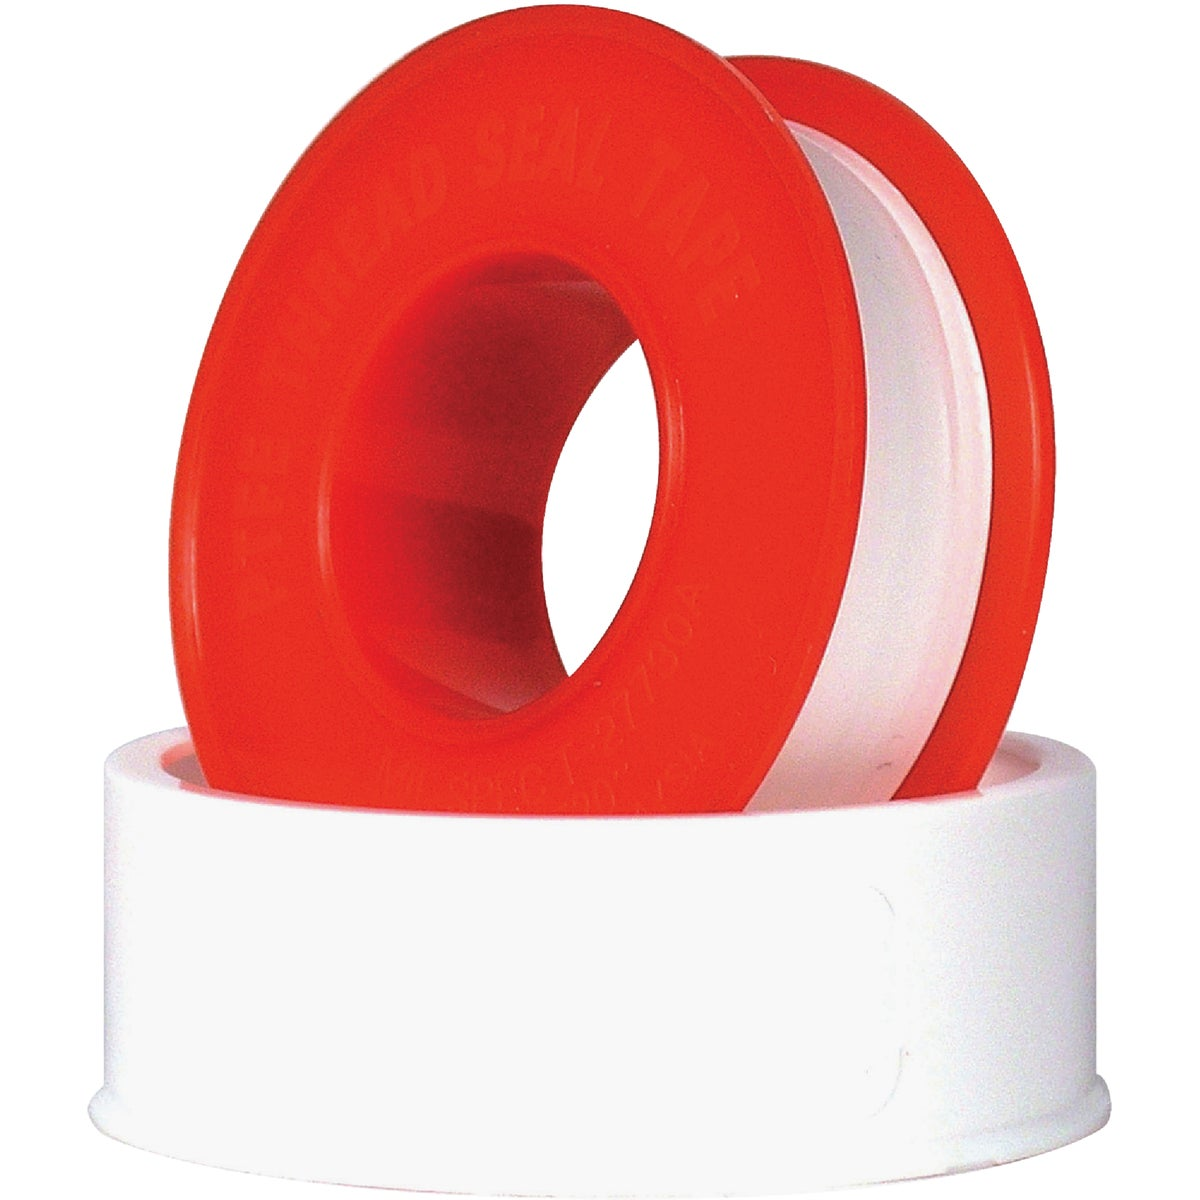 1/2X100 PTFE TAPE - 017051 by Wm H Harvey Co